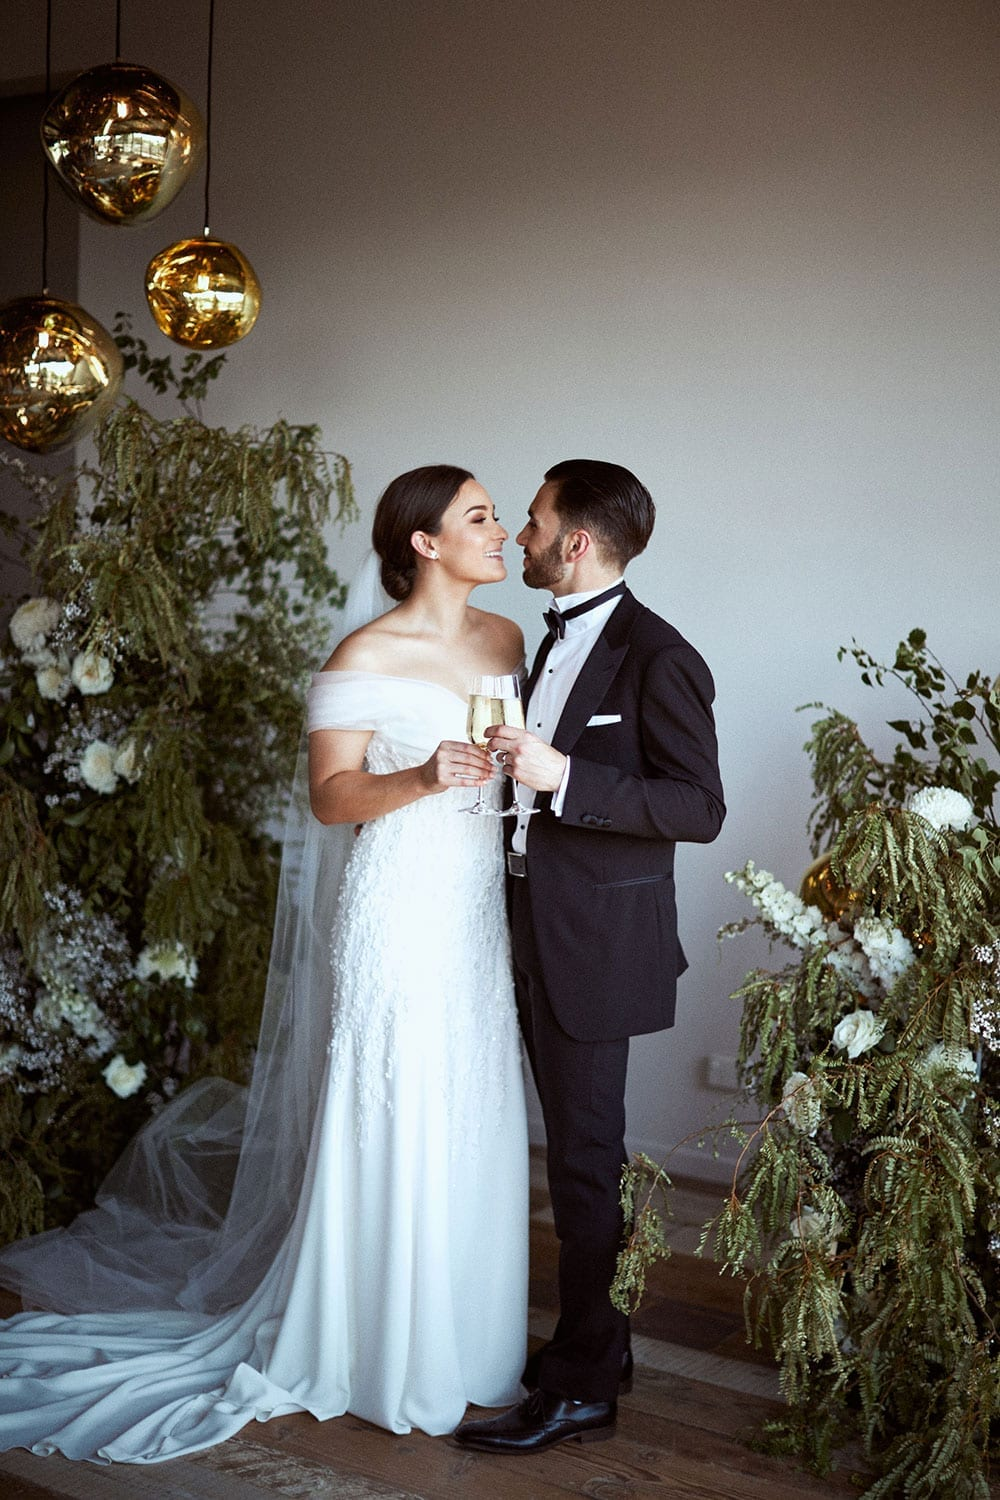 Vinka Design Features Real Weddings - bride in custom made gown with stunning silhouette. Bride and groom face to face surrounded by floral arrangements